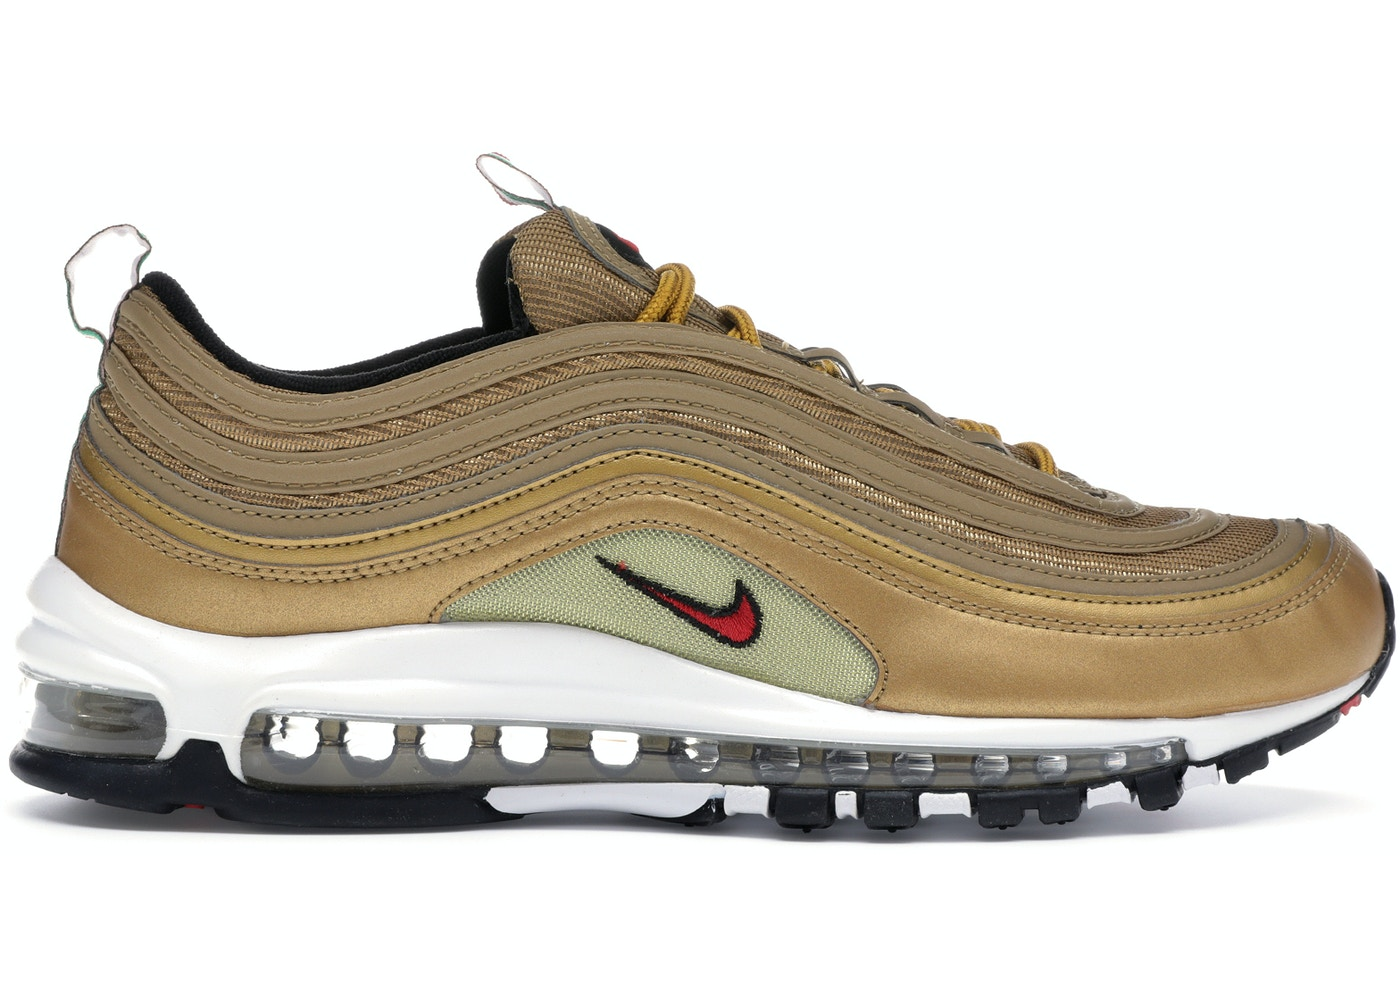 373f9b6082 Air Max 97 Metallic Gold (Italy) - AJ8056-700